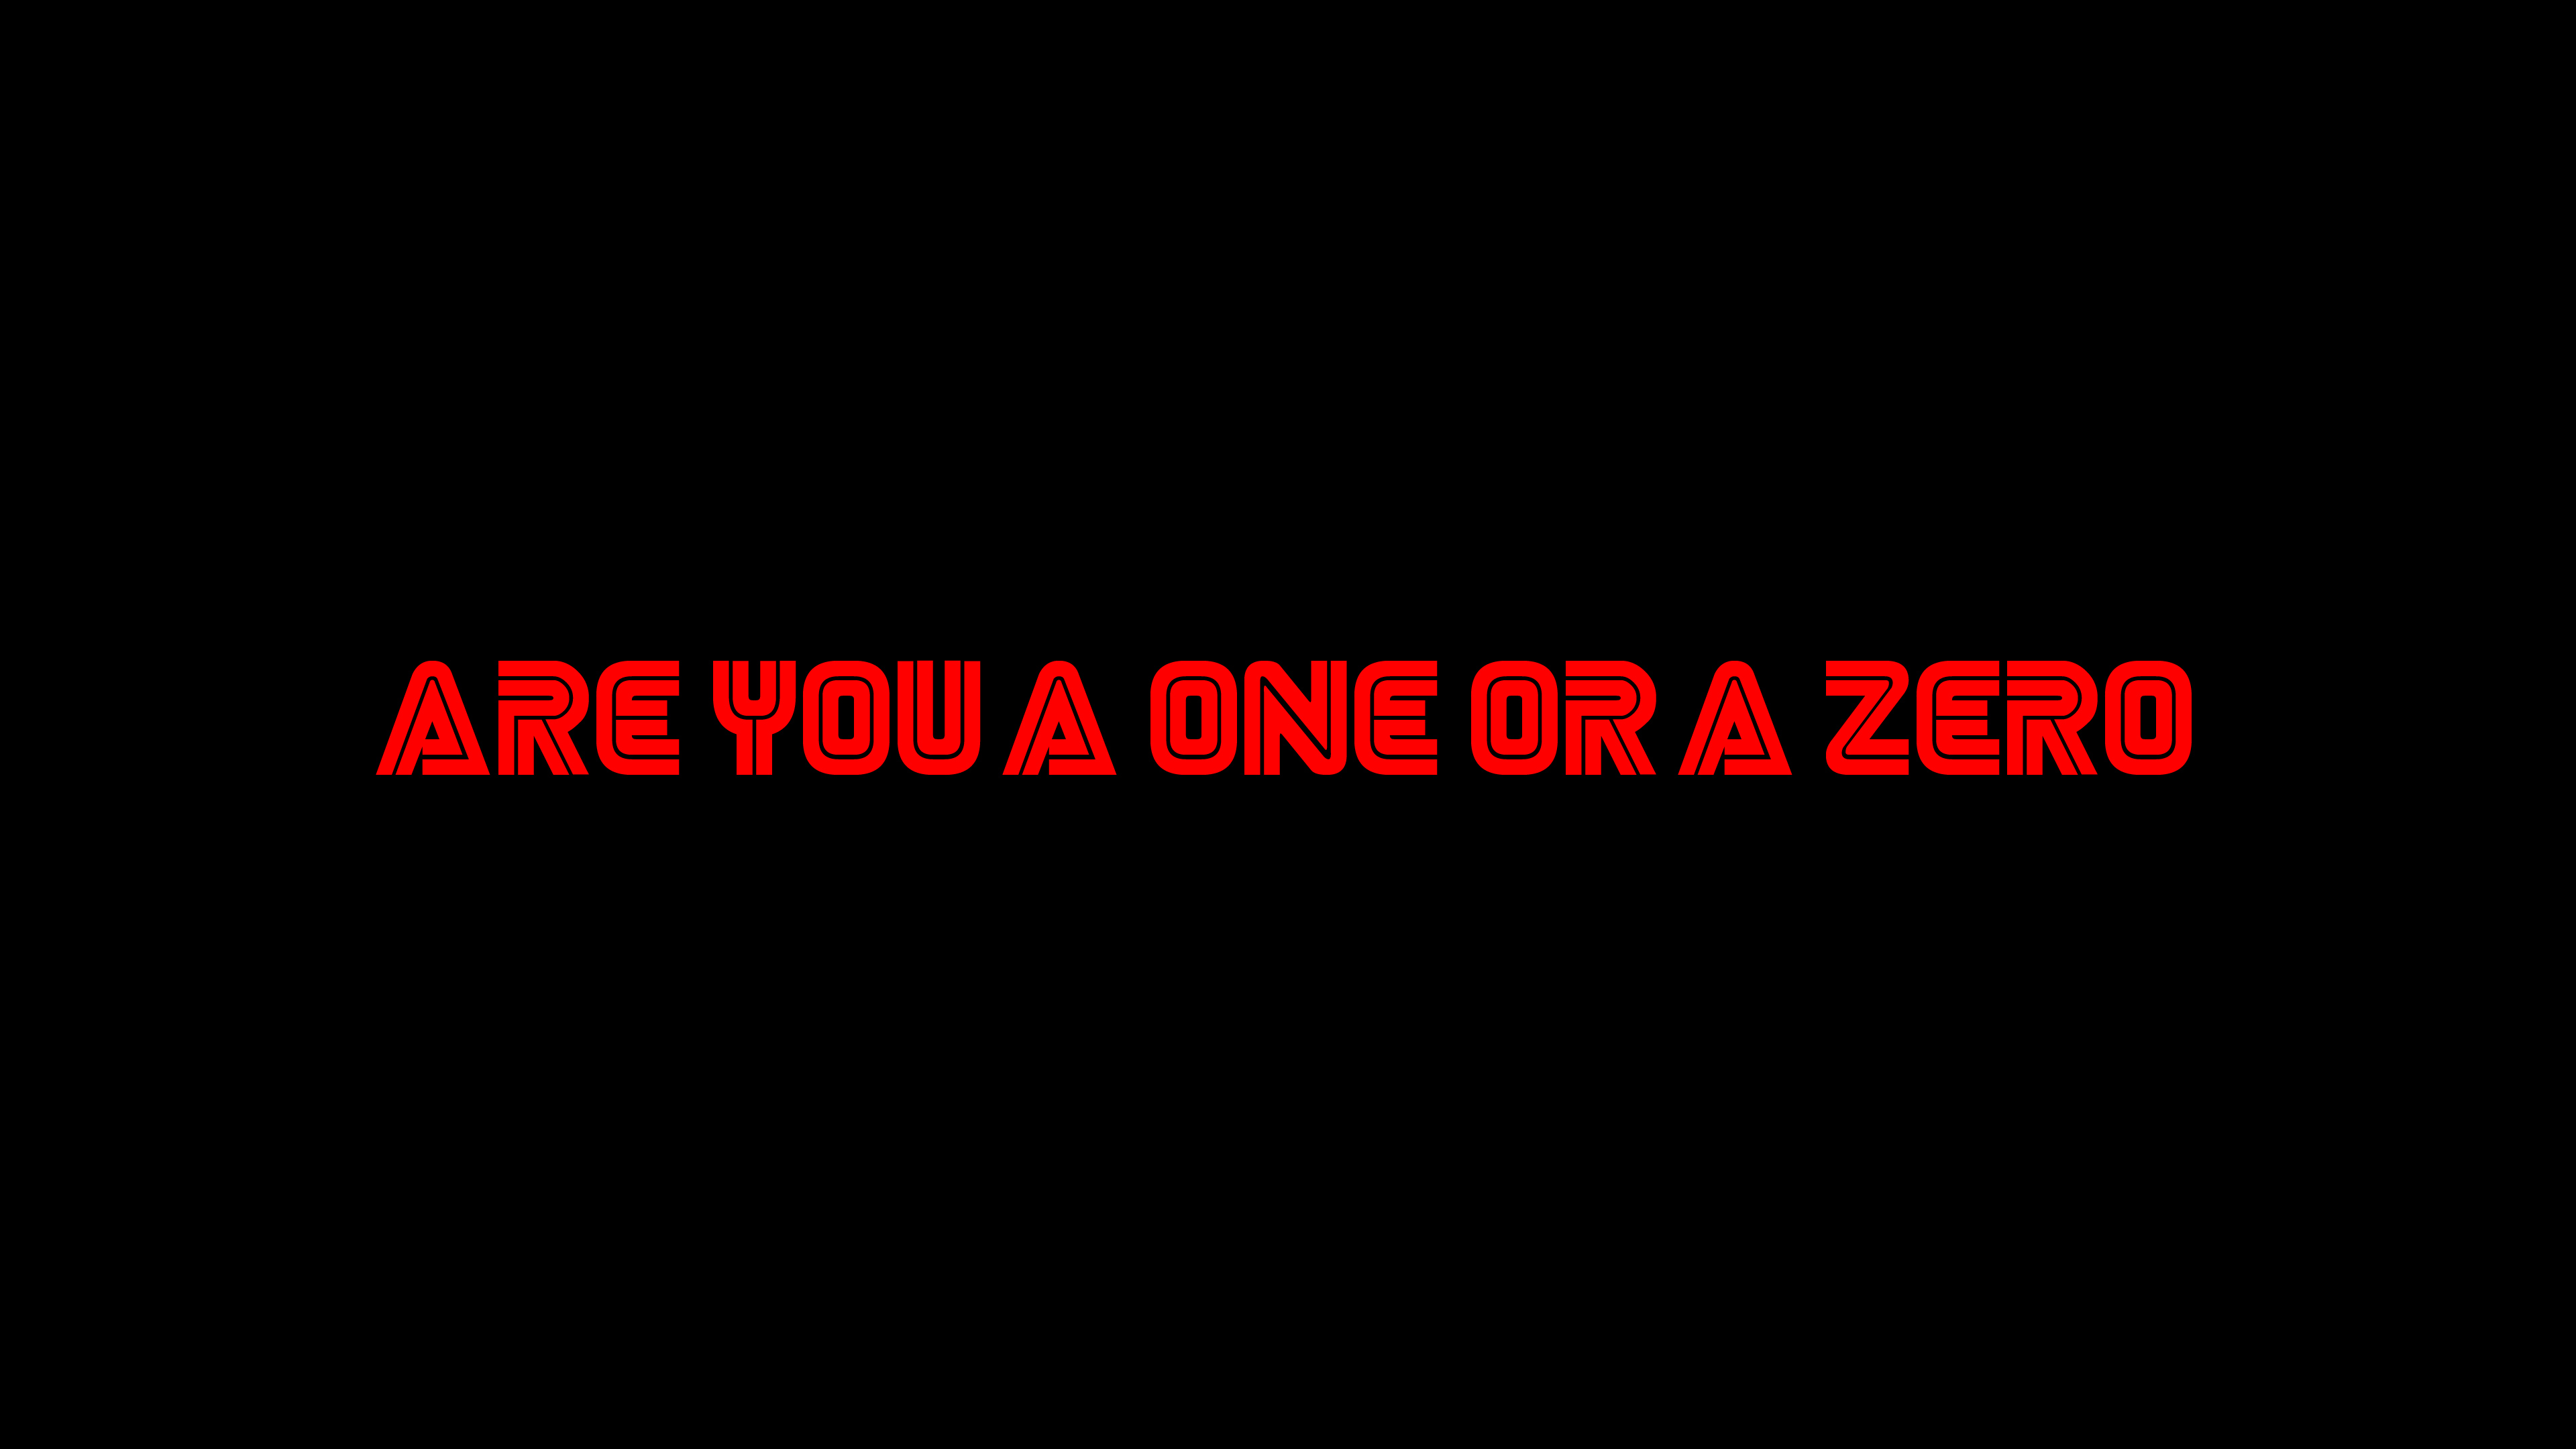 Are You A One Or A Zero Mr Robot Typography 4k Hd Tv Shows